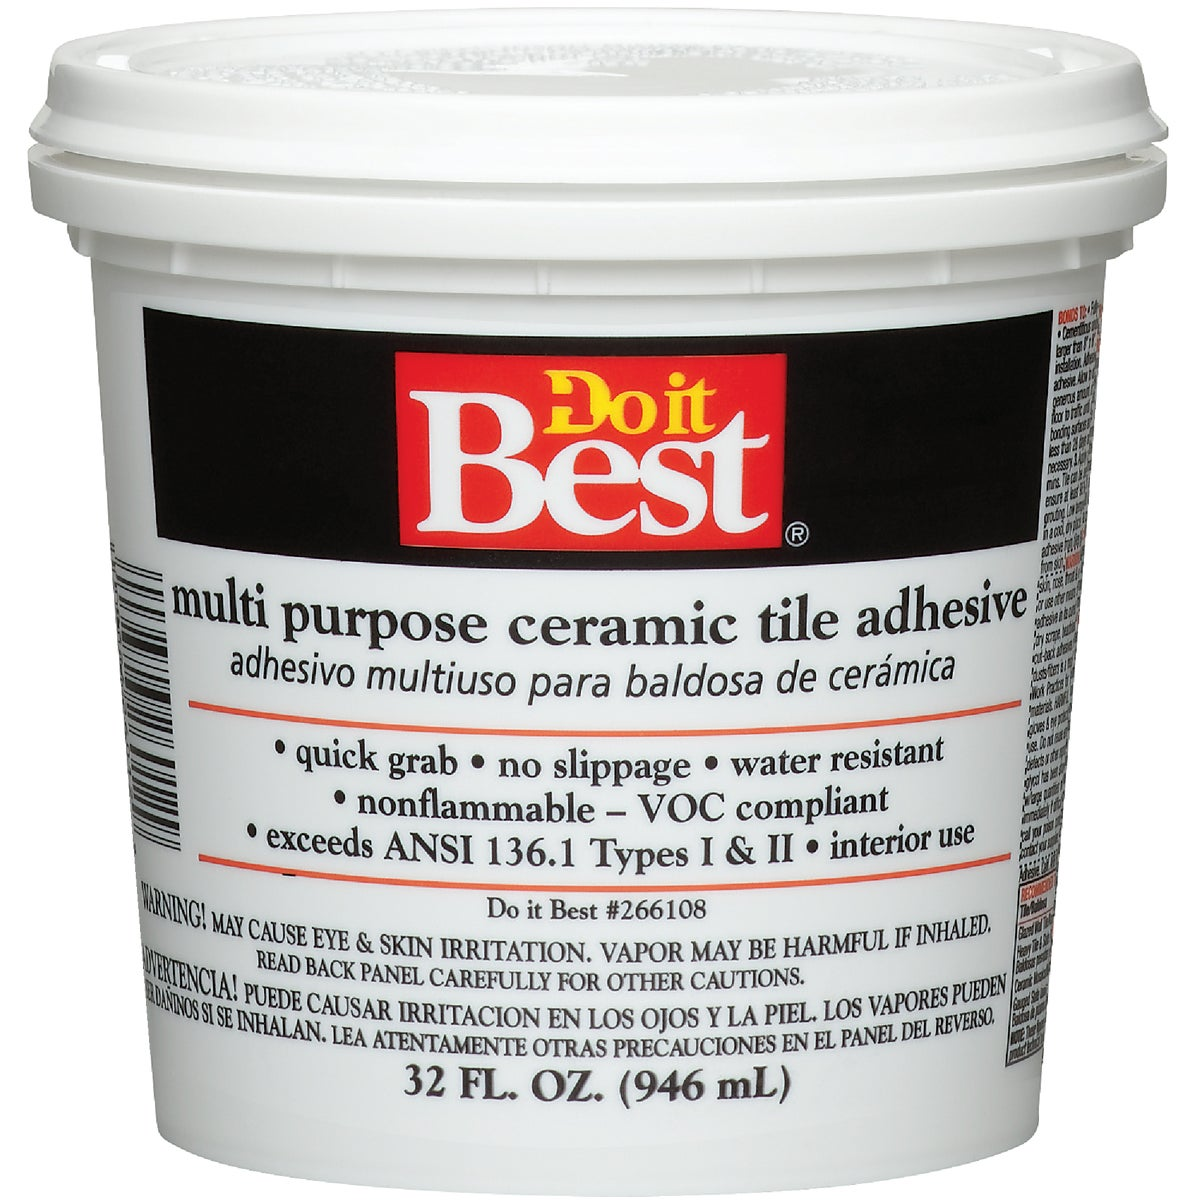 QT CERAMIC TILE ADHESIVE - 26012 by Dap Inc